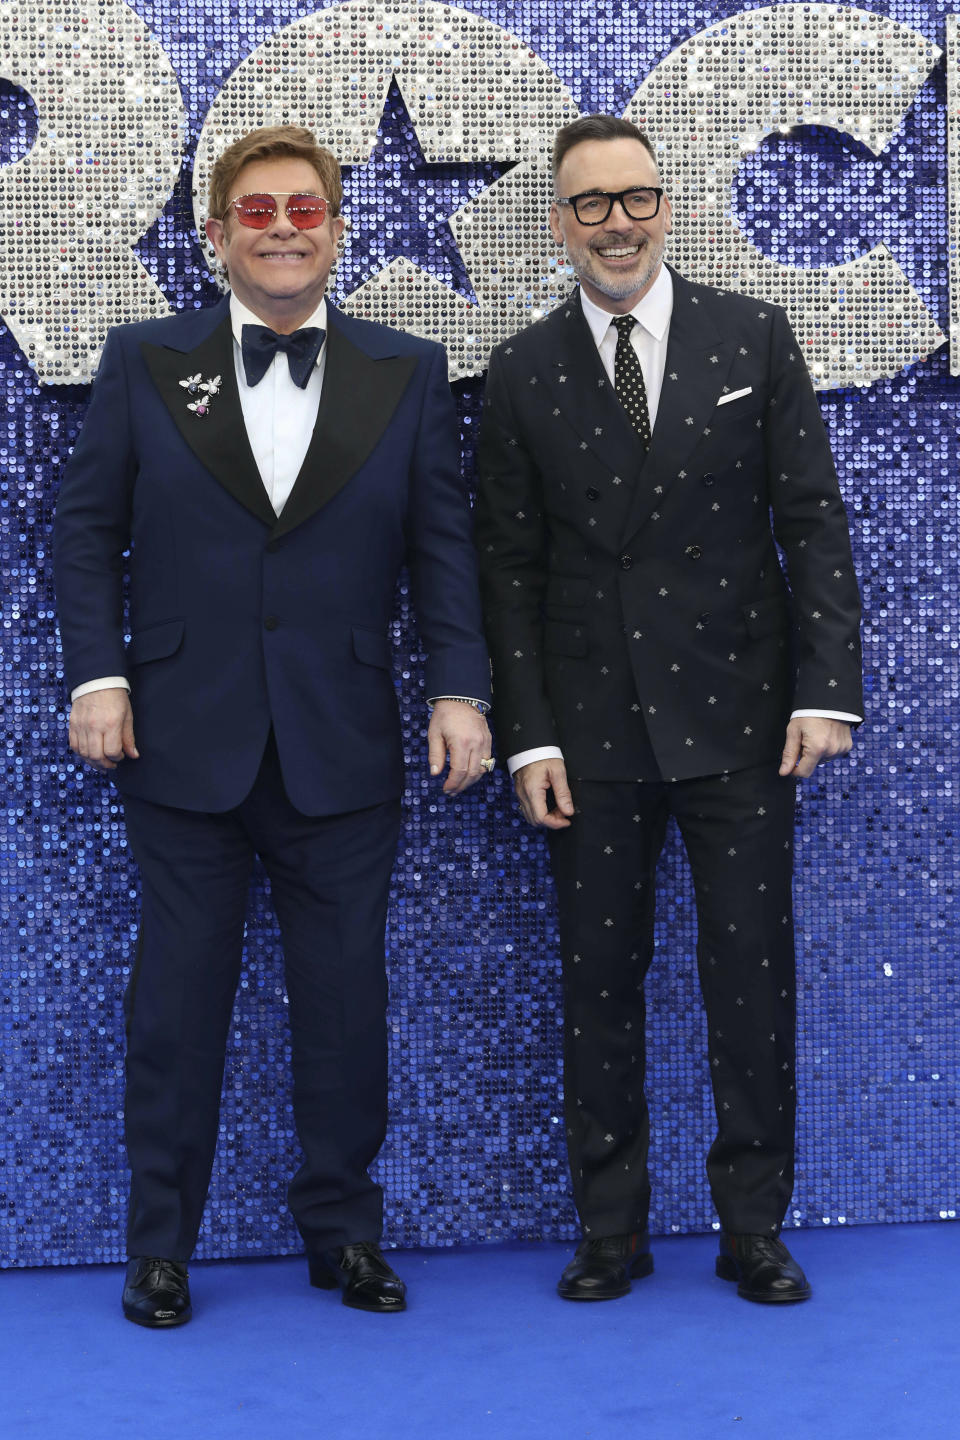 Photo by: KGC-247/STAR MAX/IPx 2019 5/20/19 Elton John and David Furnish at the premiere of 'Rocketman' in London, England.